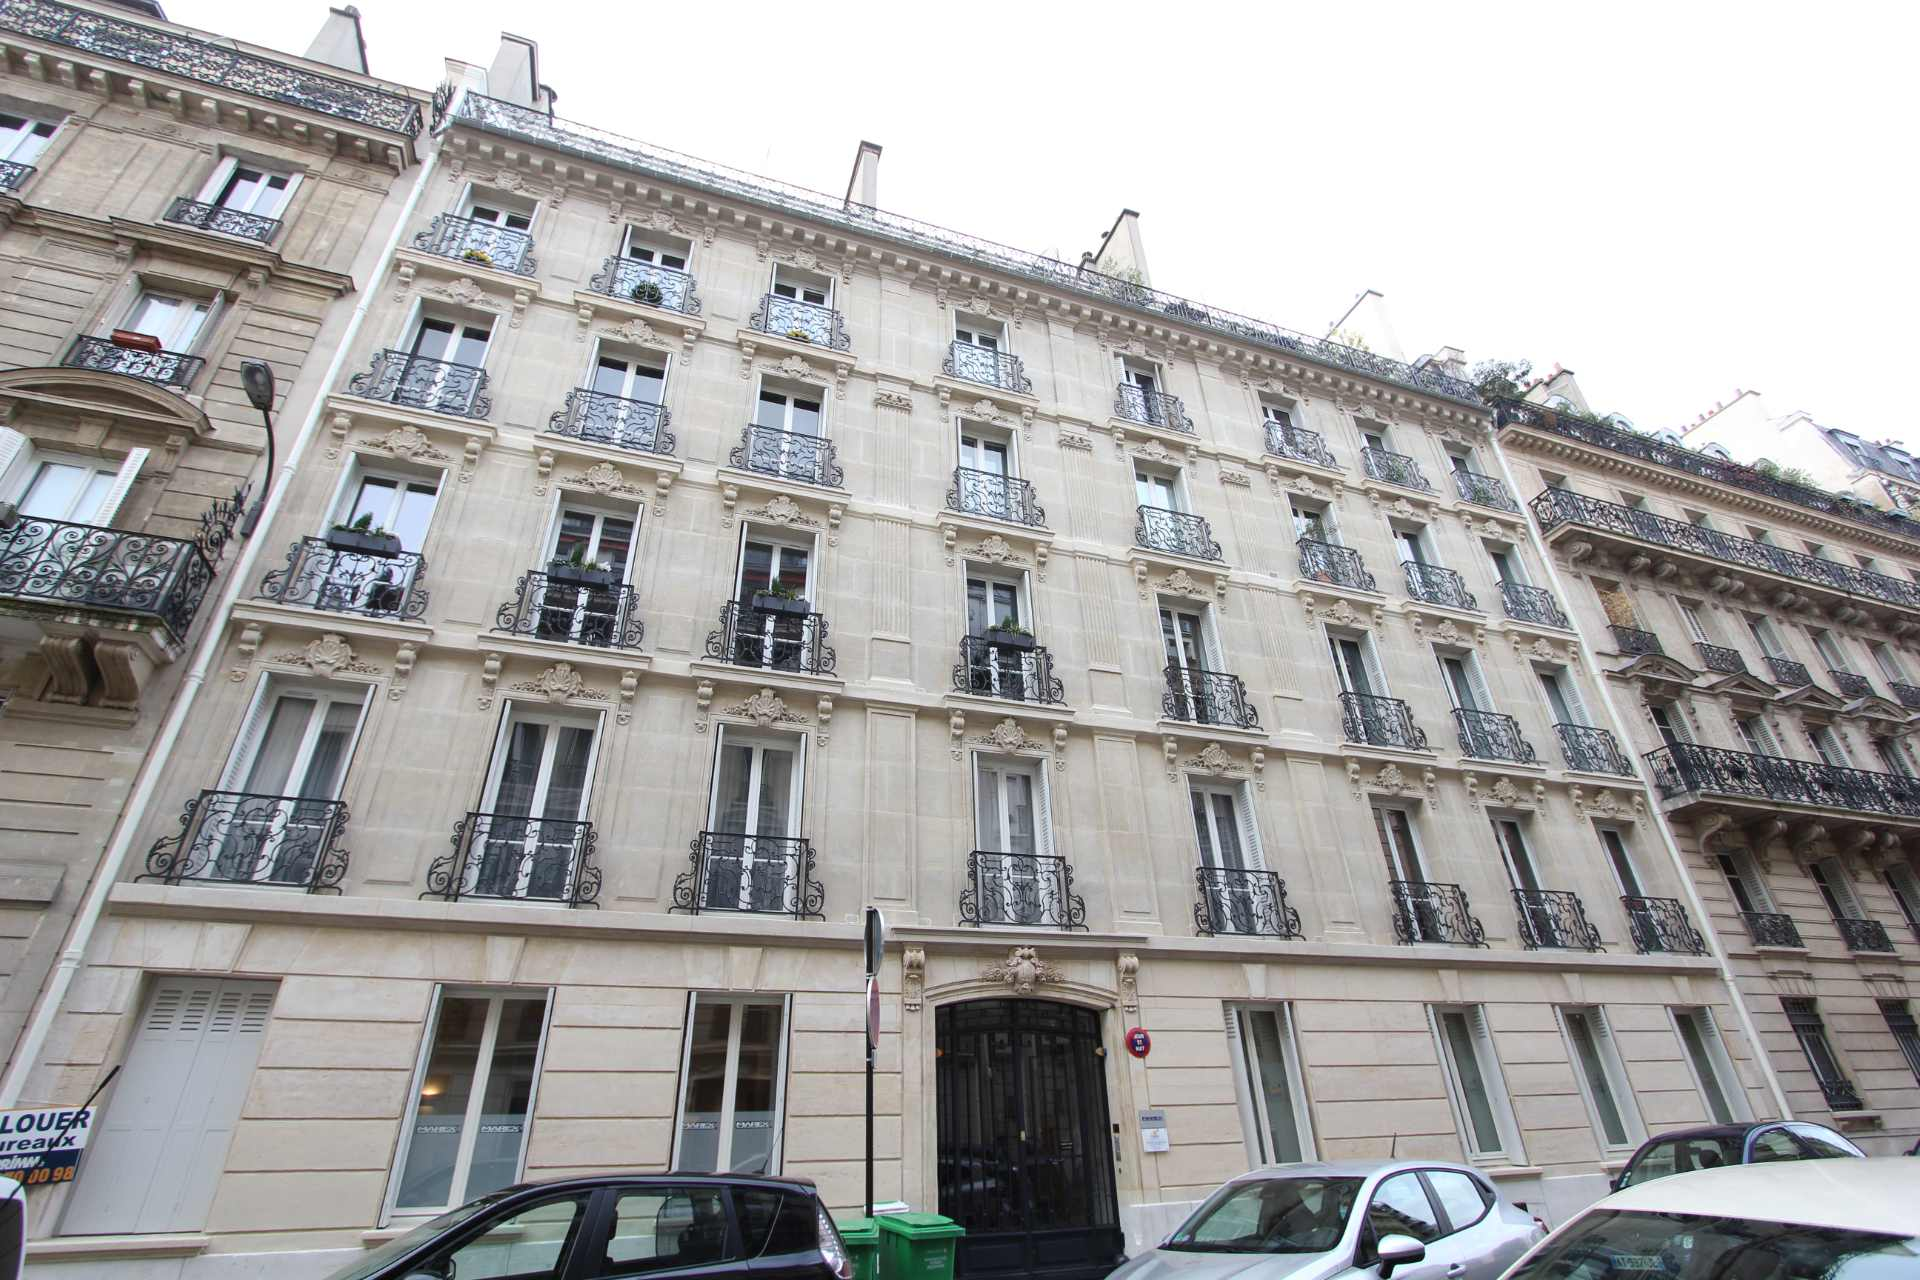 Europe district (rue Clapeyron in the 8th arrondissement), Legally laudable studio of 9.88 m² Law Carrez located in a beautiful well maintained building 2